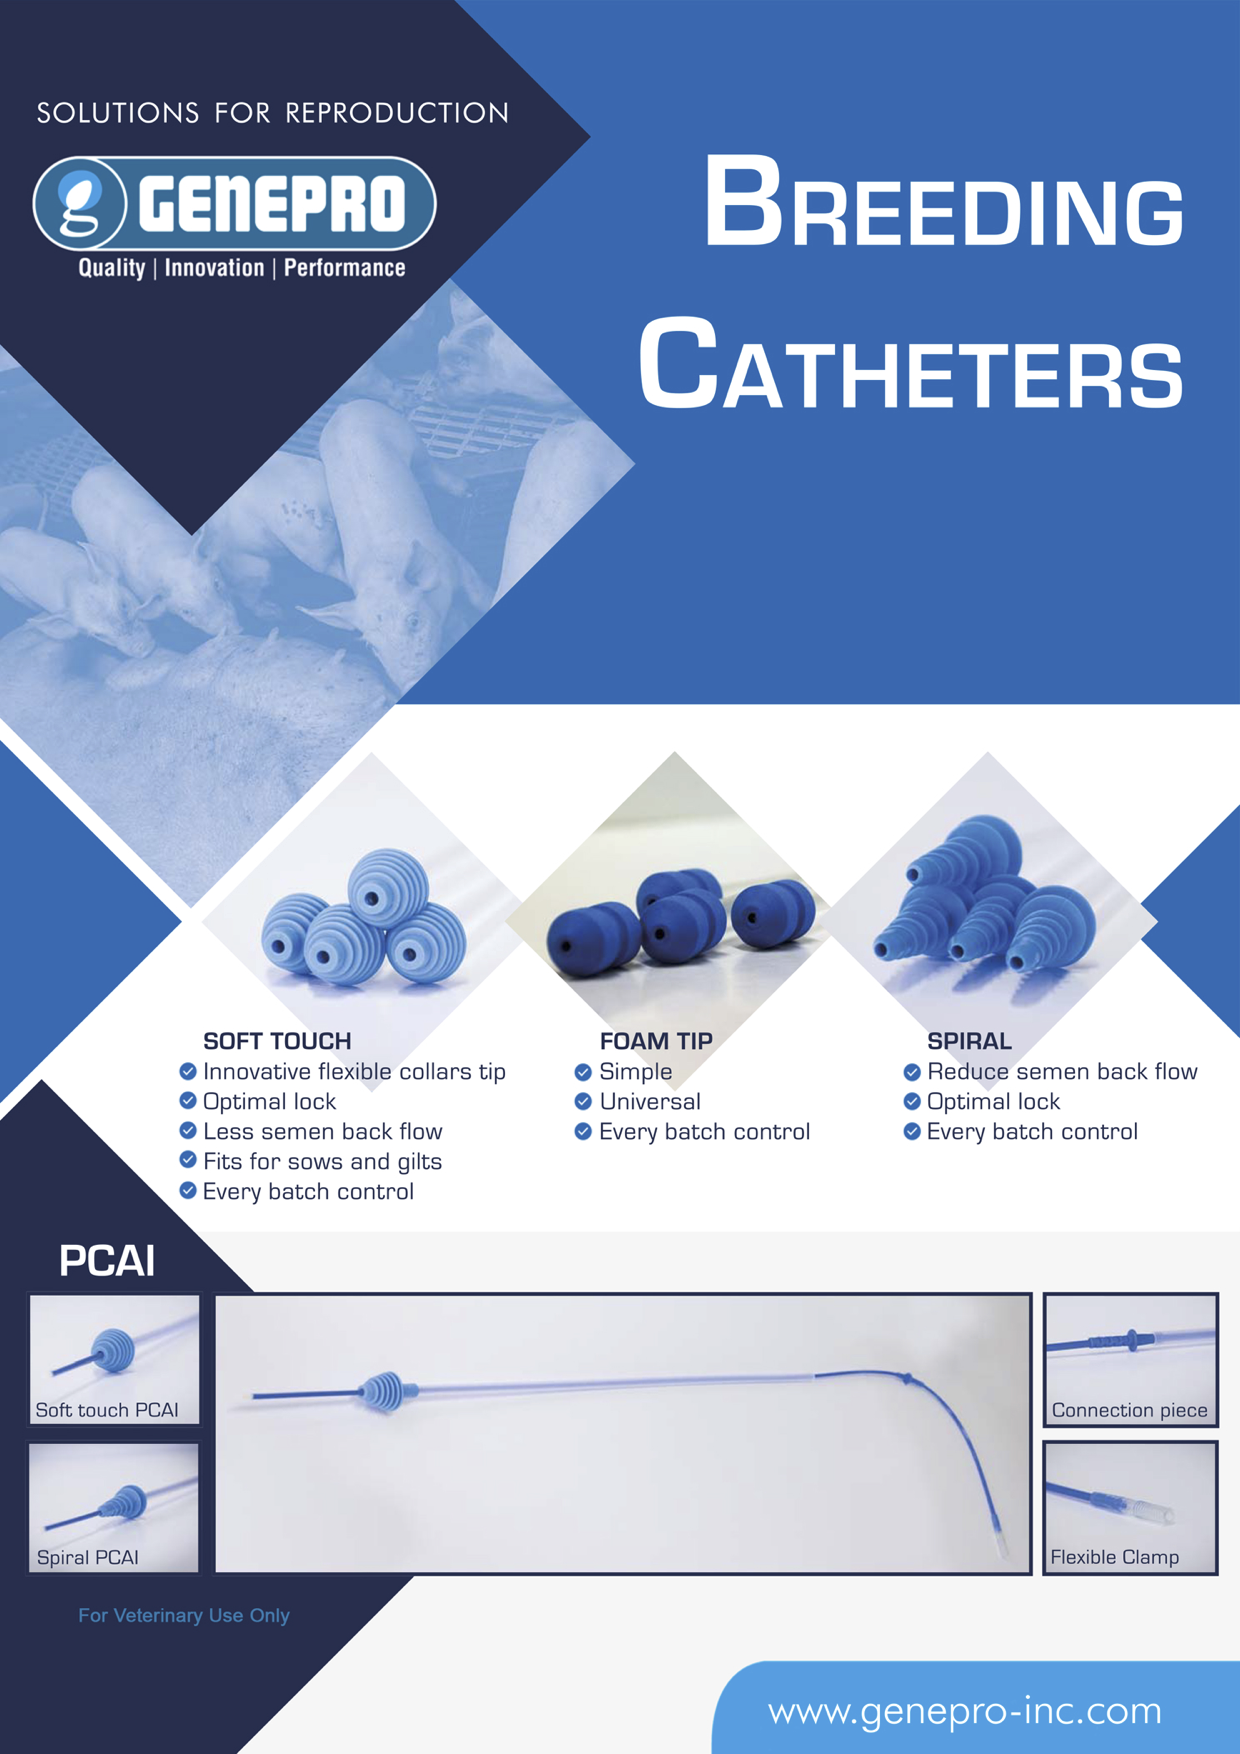 breeding-catheters-fvu2